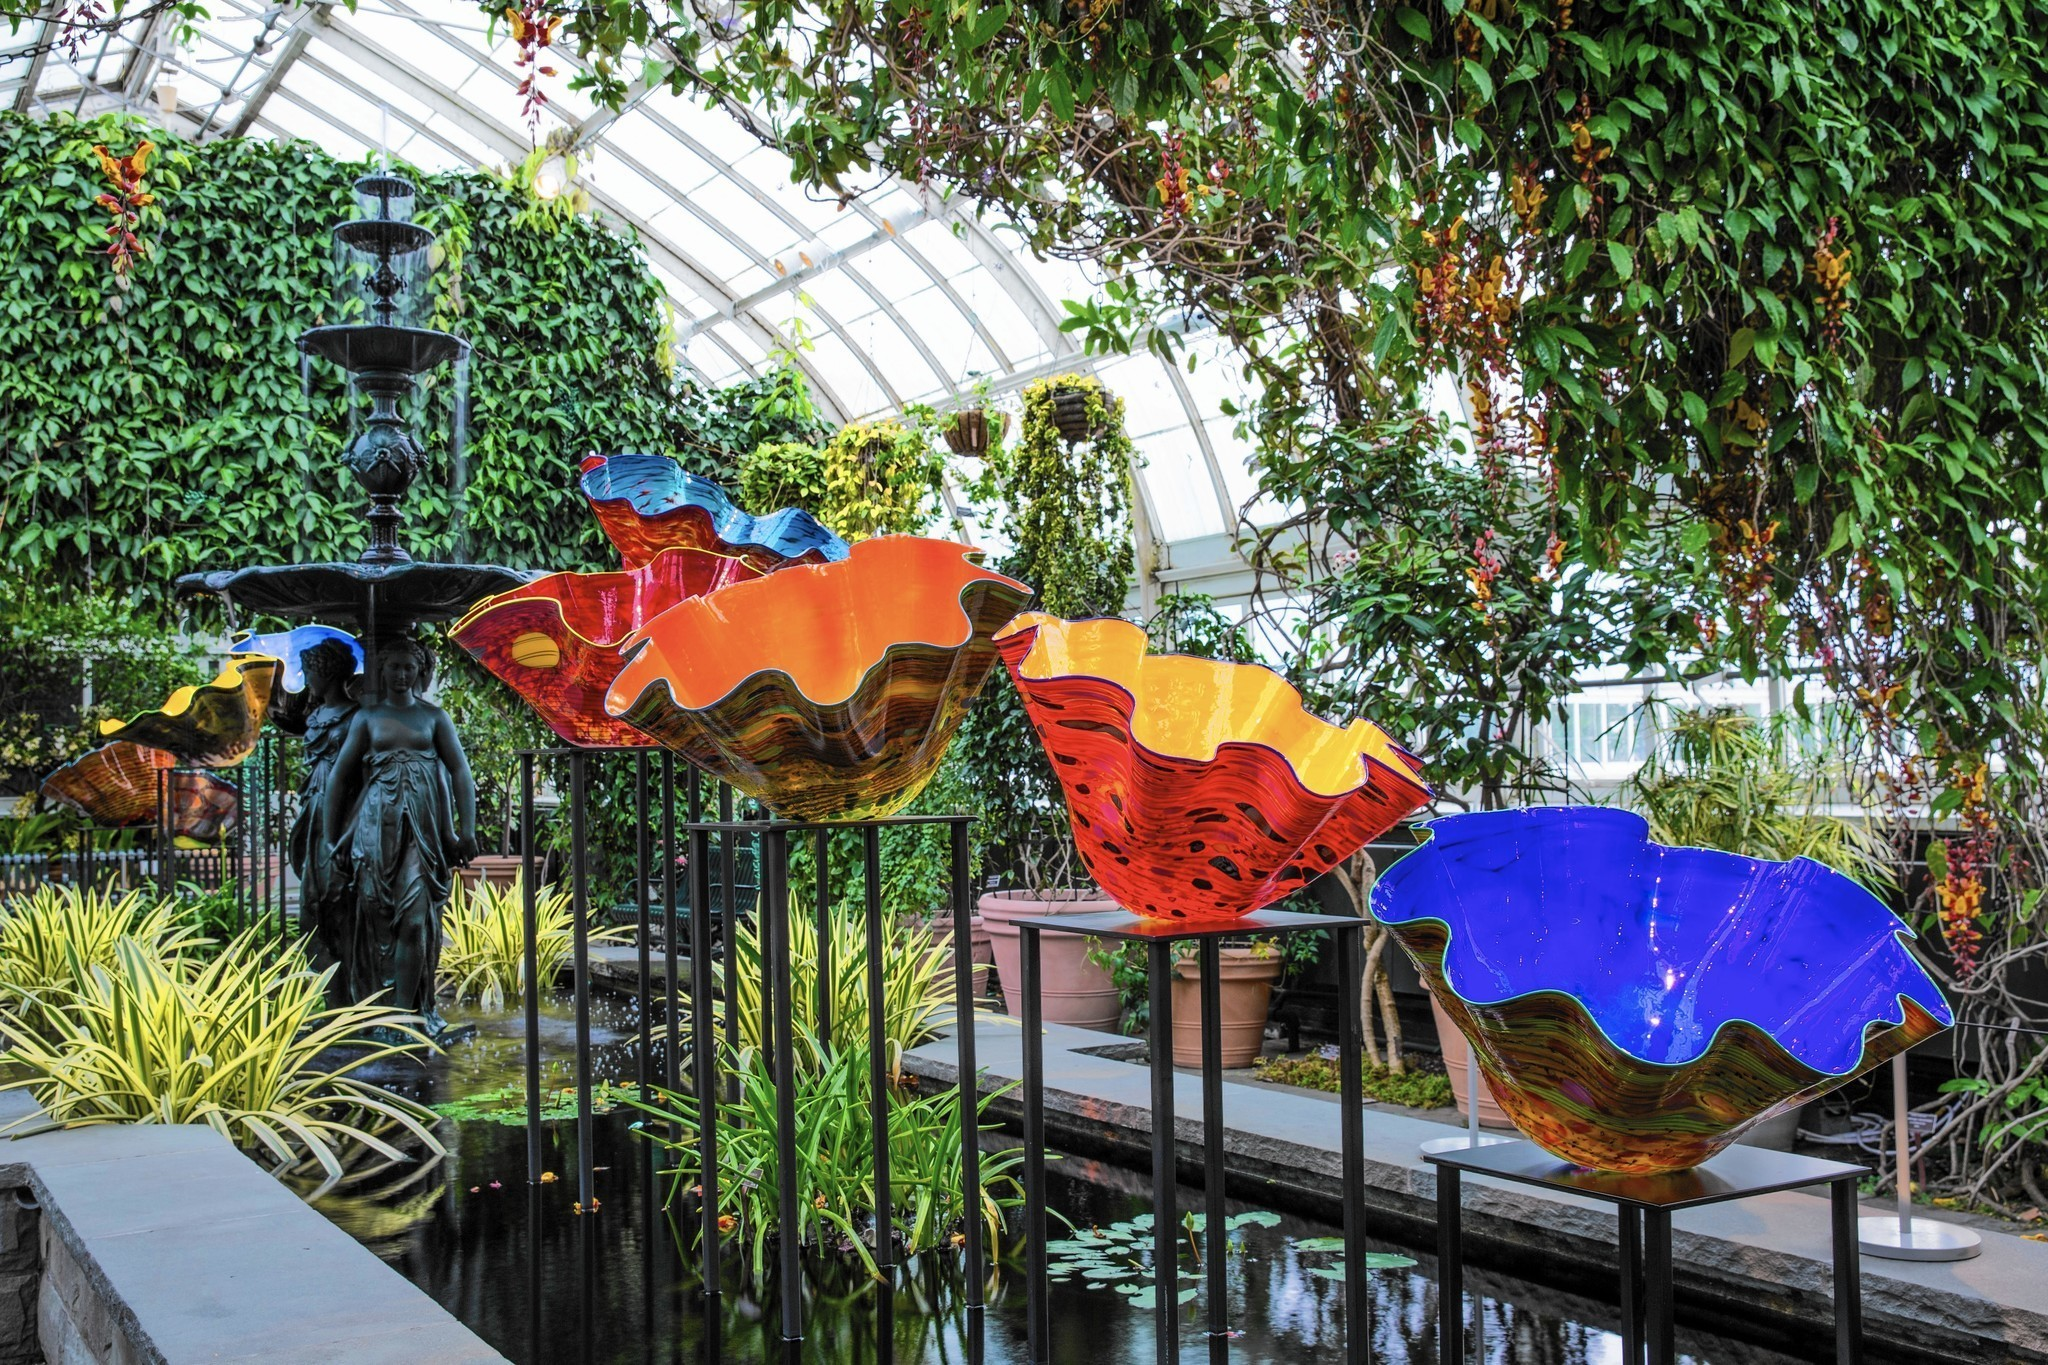 Chihuly Glass Exhibit Blooms In The Bronx Chicago Tribune